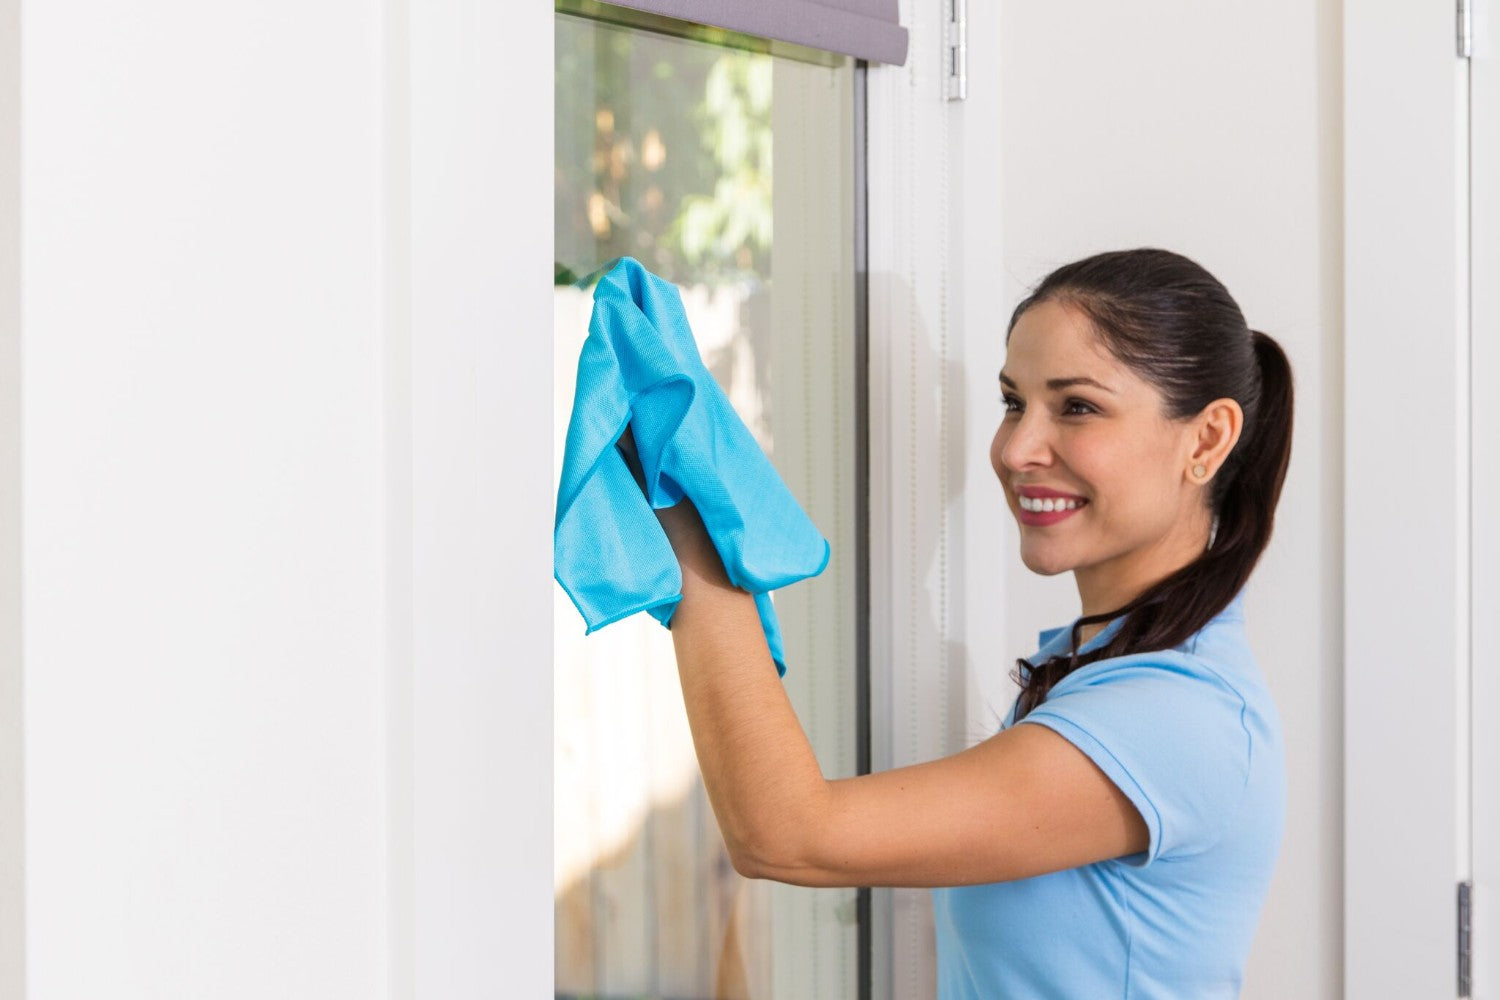 Streak free window cleaning cloths